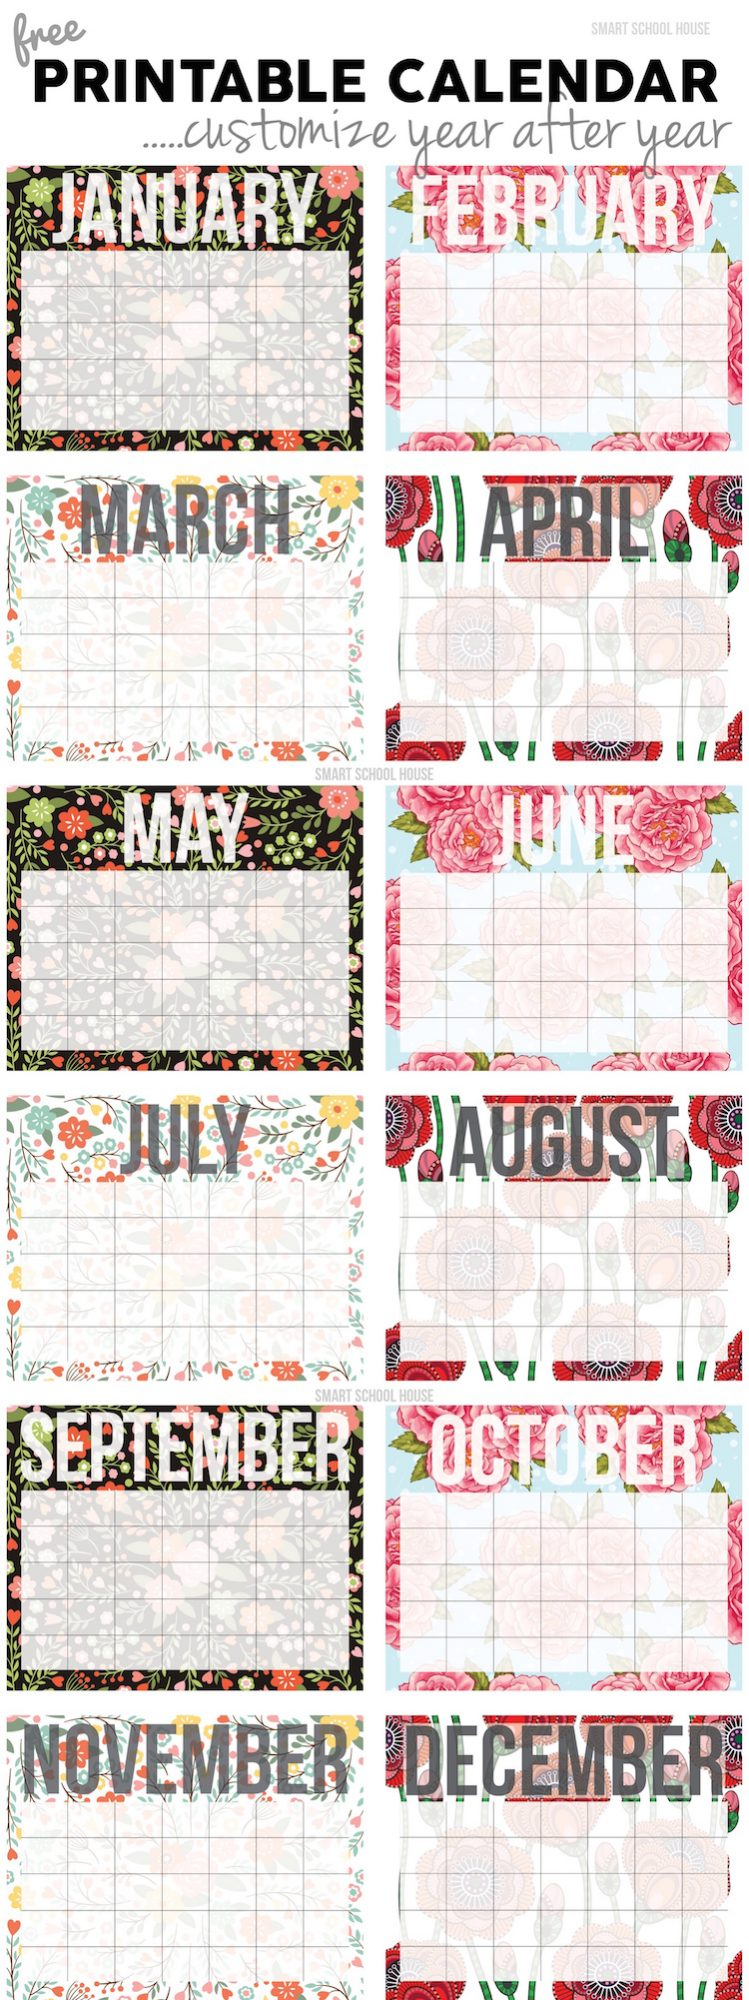 2021 Free Printable Calendars - 20+ Designs For Monthly throughout Girly Calewnder Of The Year